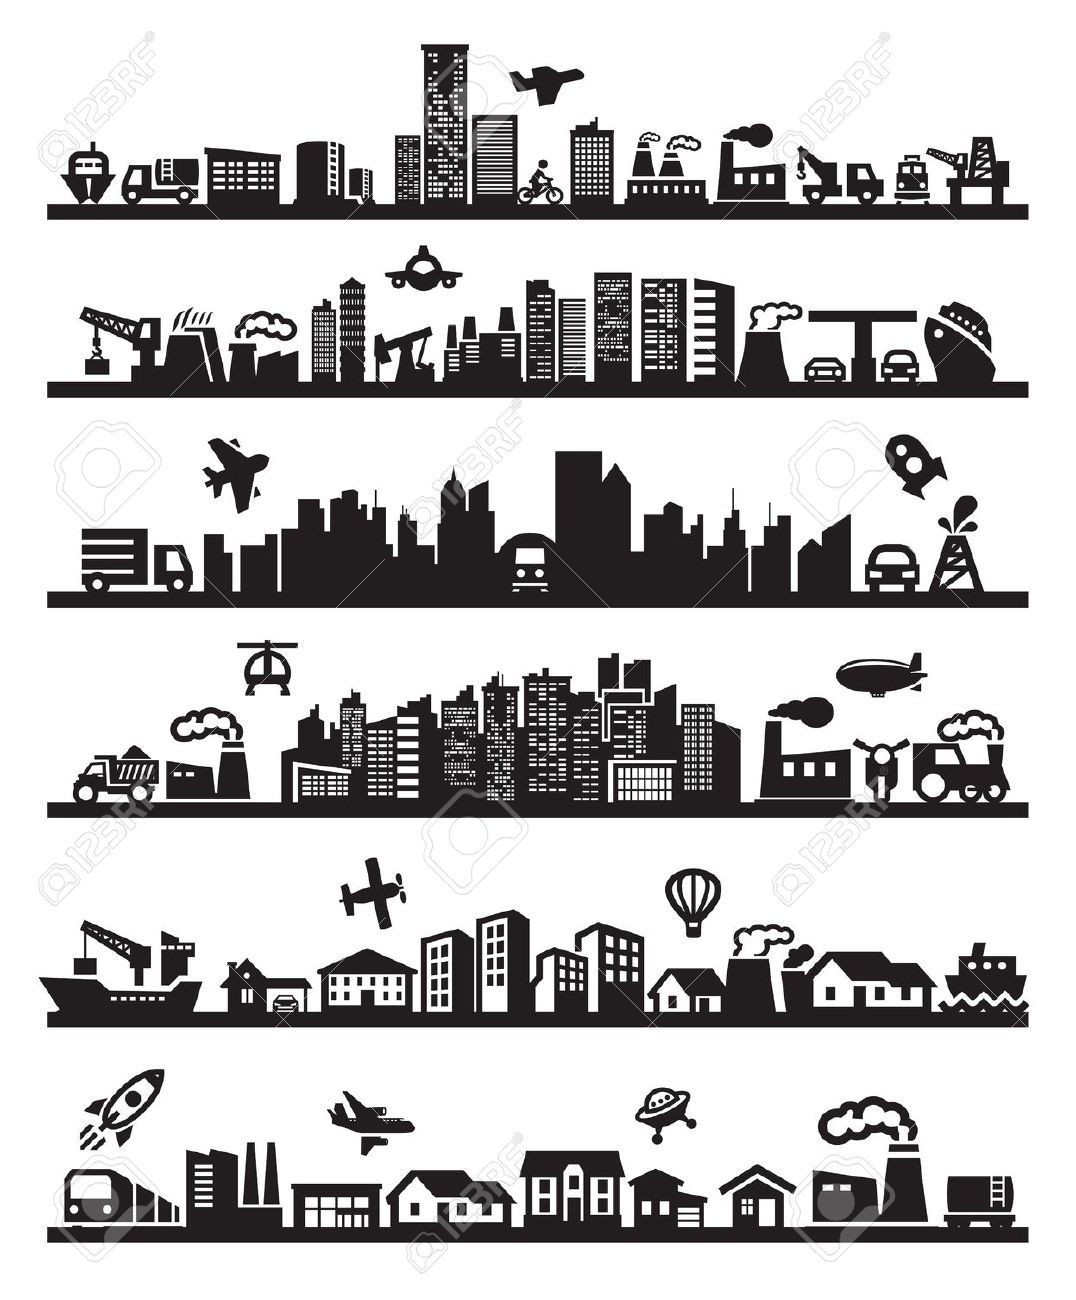 Big City Icons Royalty Free Cliparts, Vectors, And Stock.